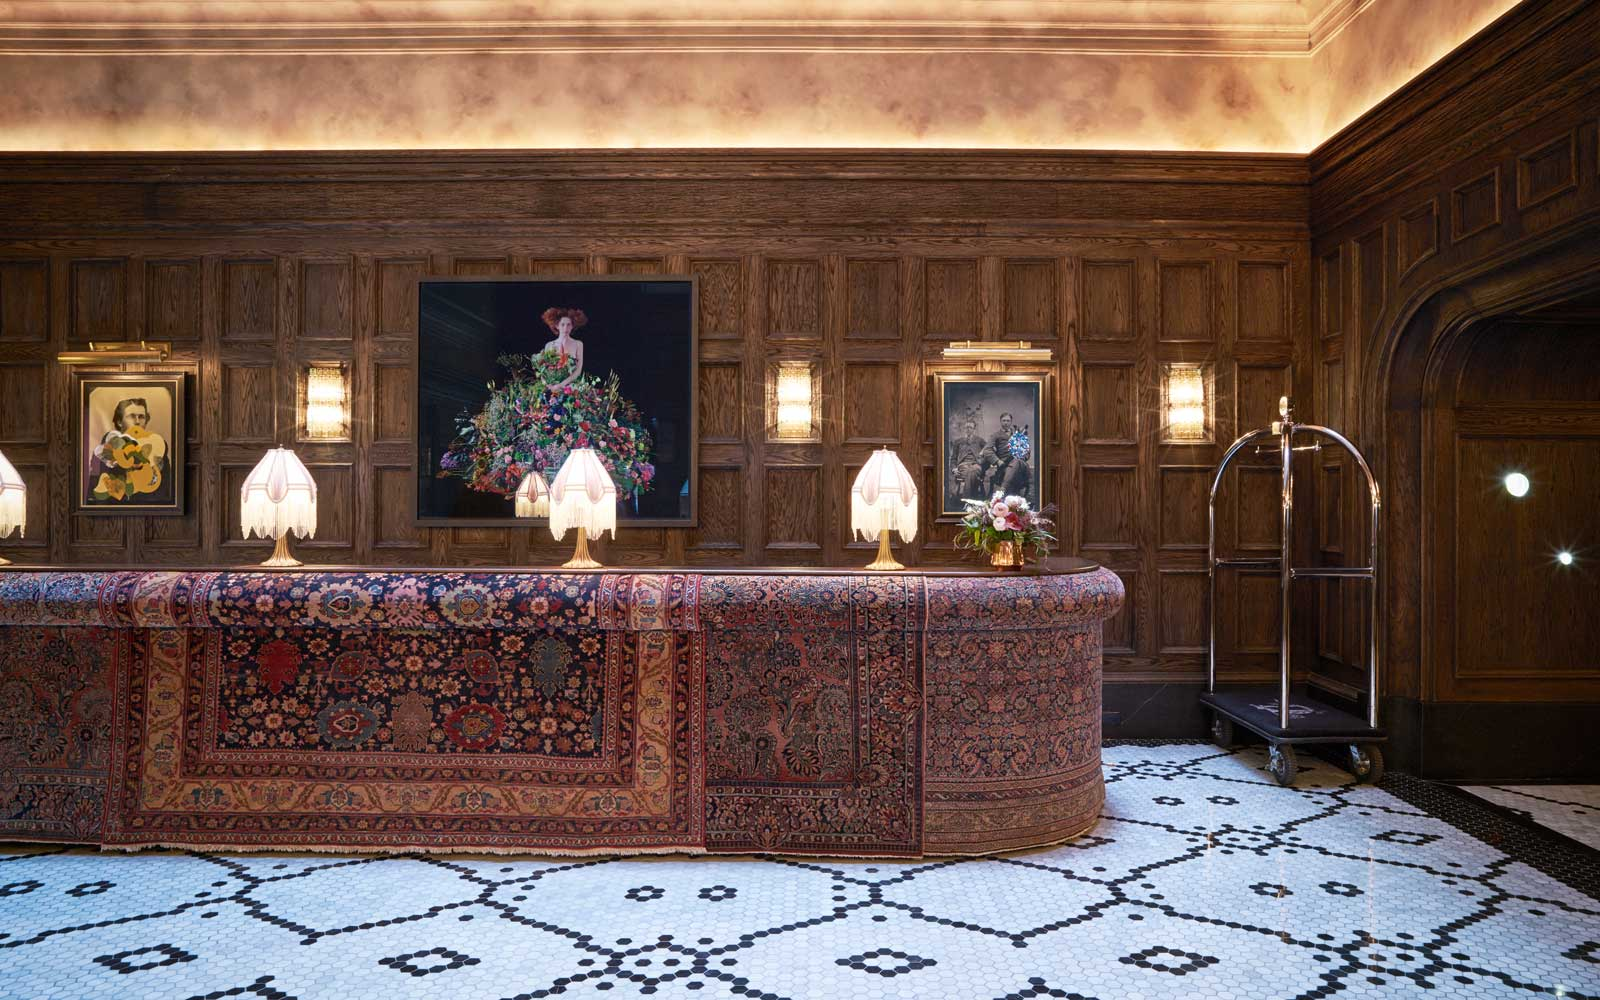 Reception desk of The Beekman, a Thompson Hotel